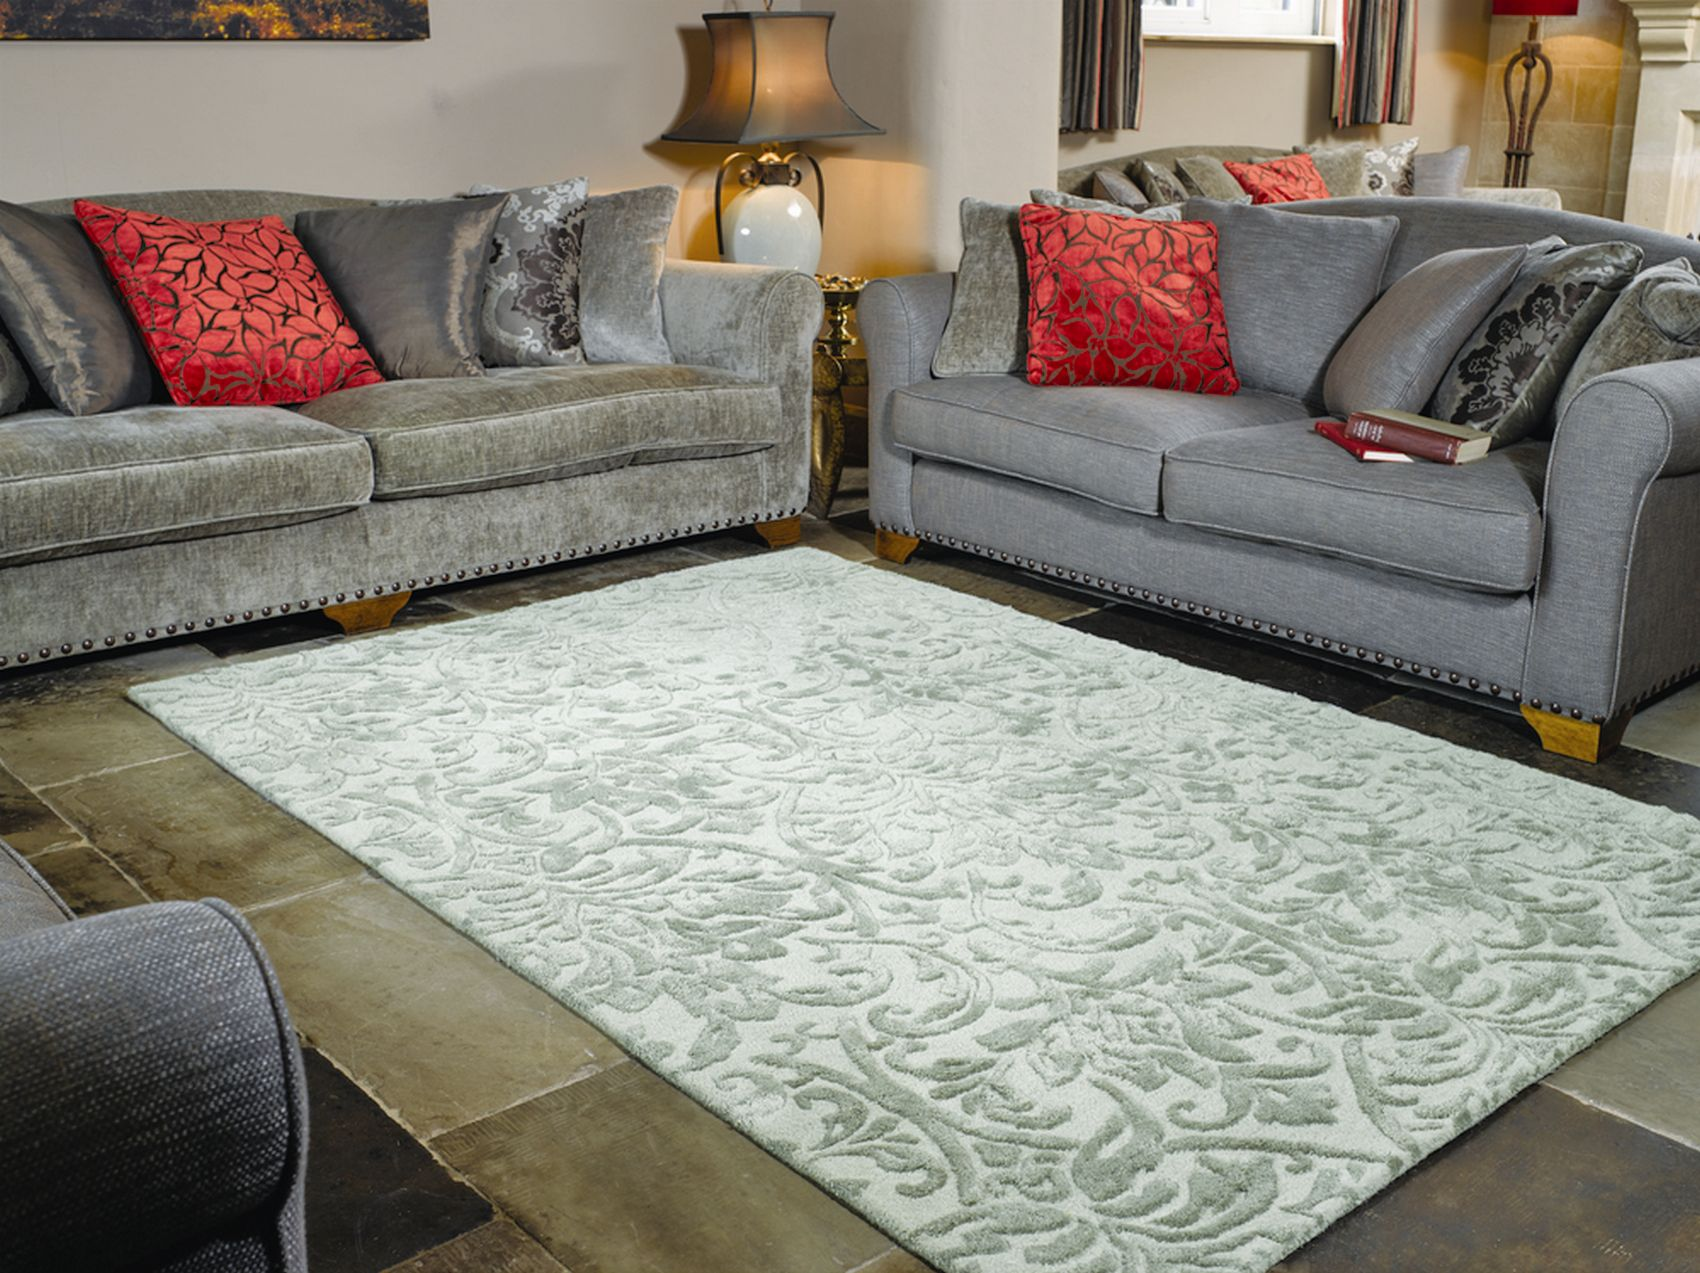 Luxury Rugs 100 Wool Thick Hard Wearing Small